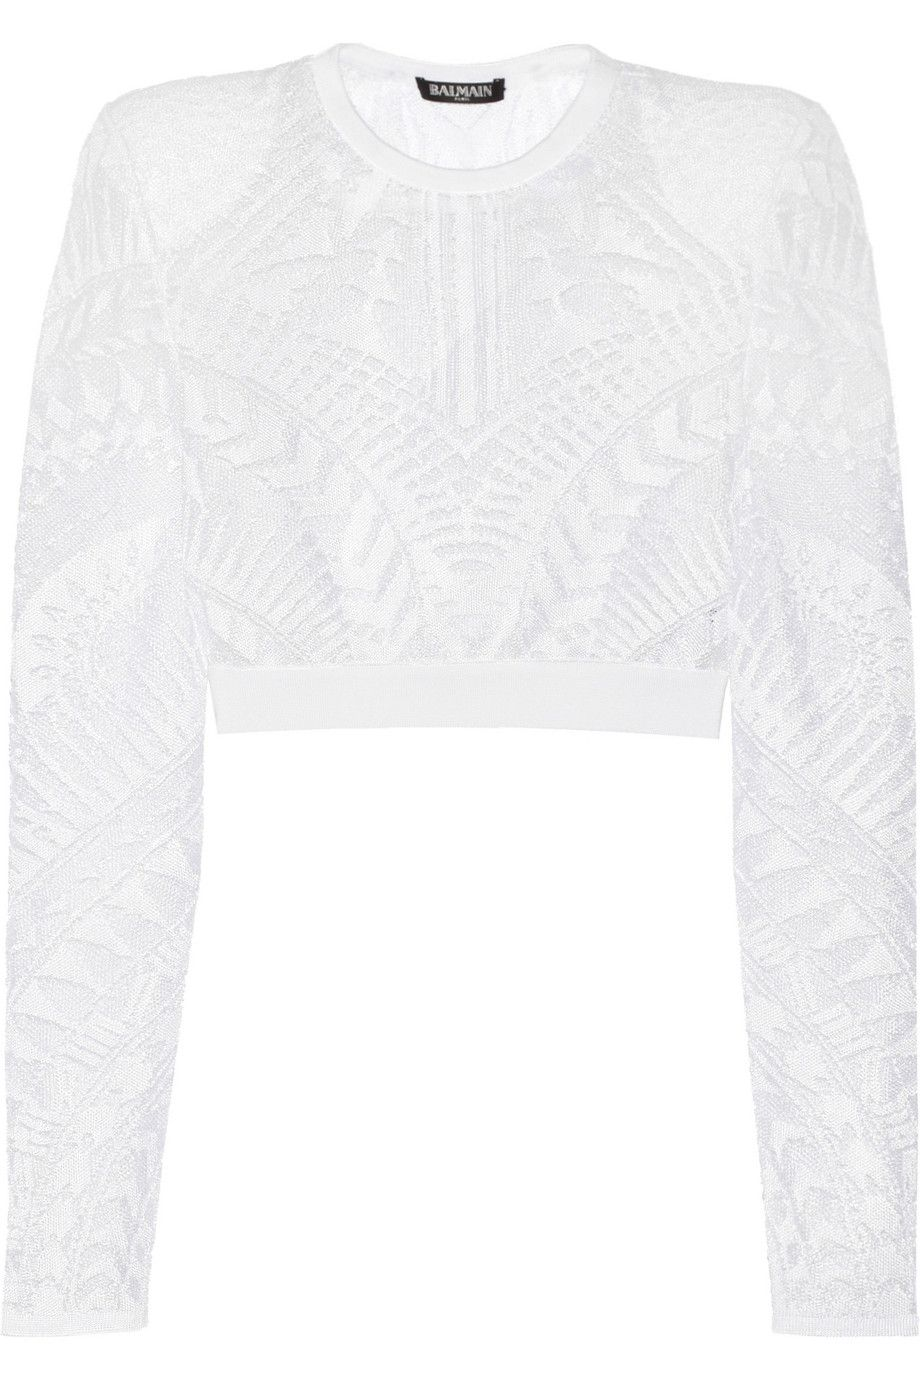 BALMAIN Cropped Stretch-Lace Top. #balmain #cloth #top